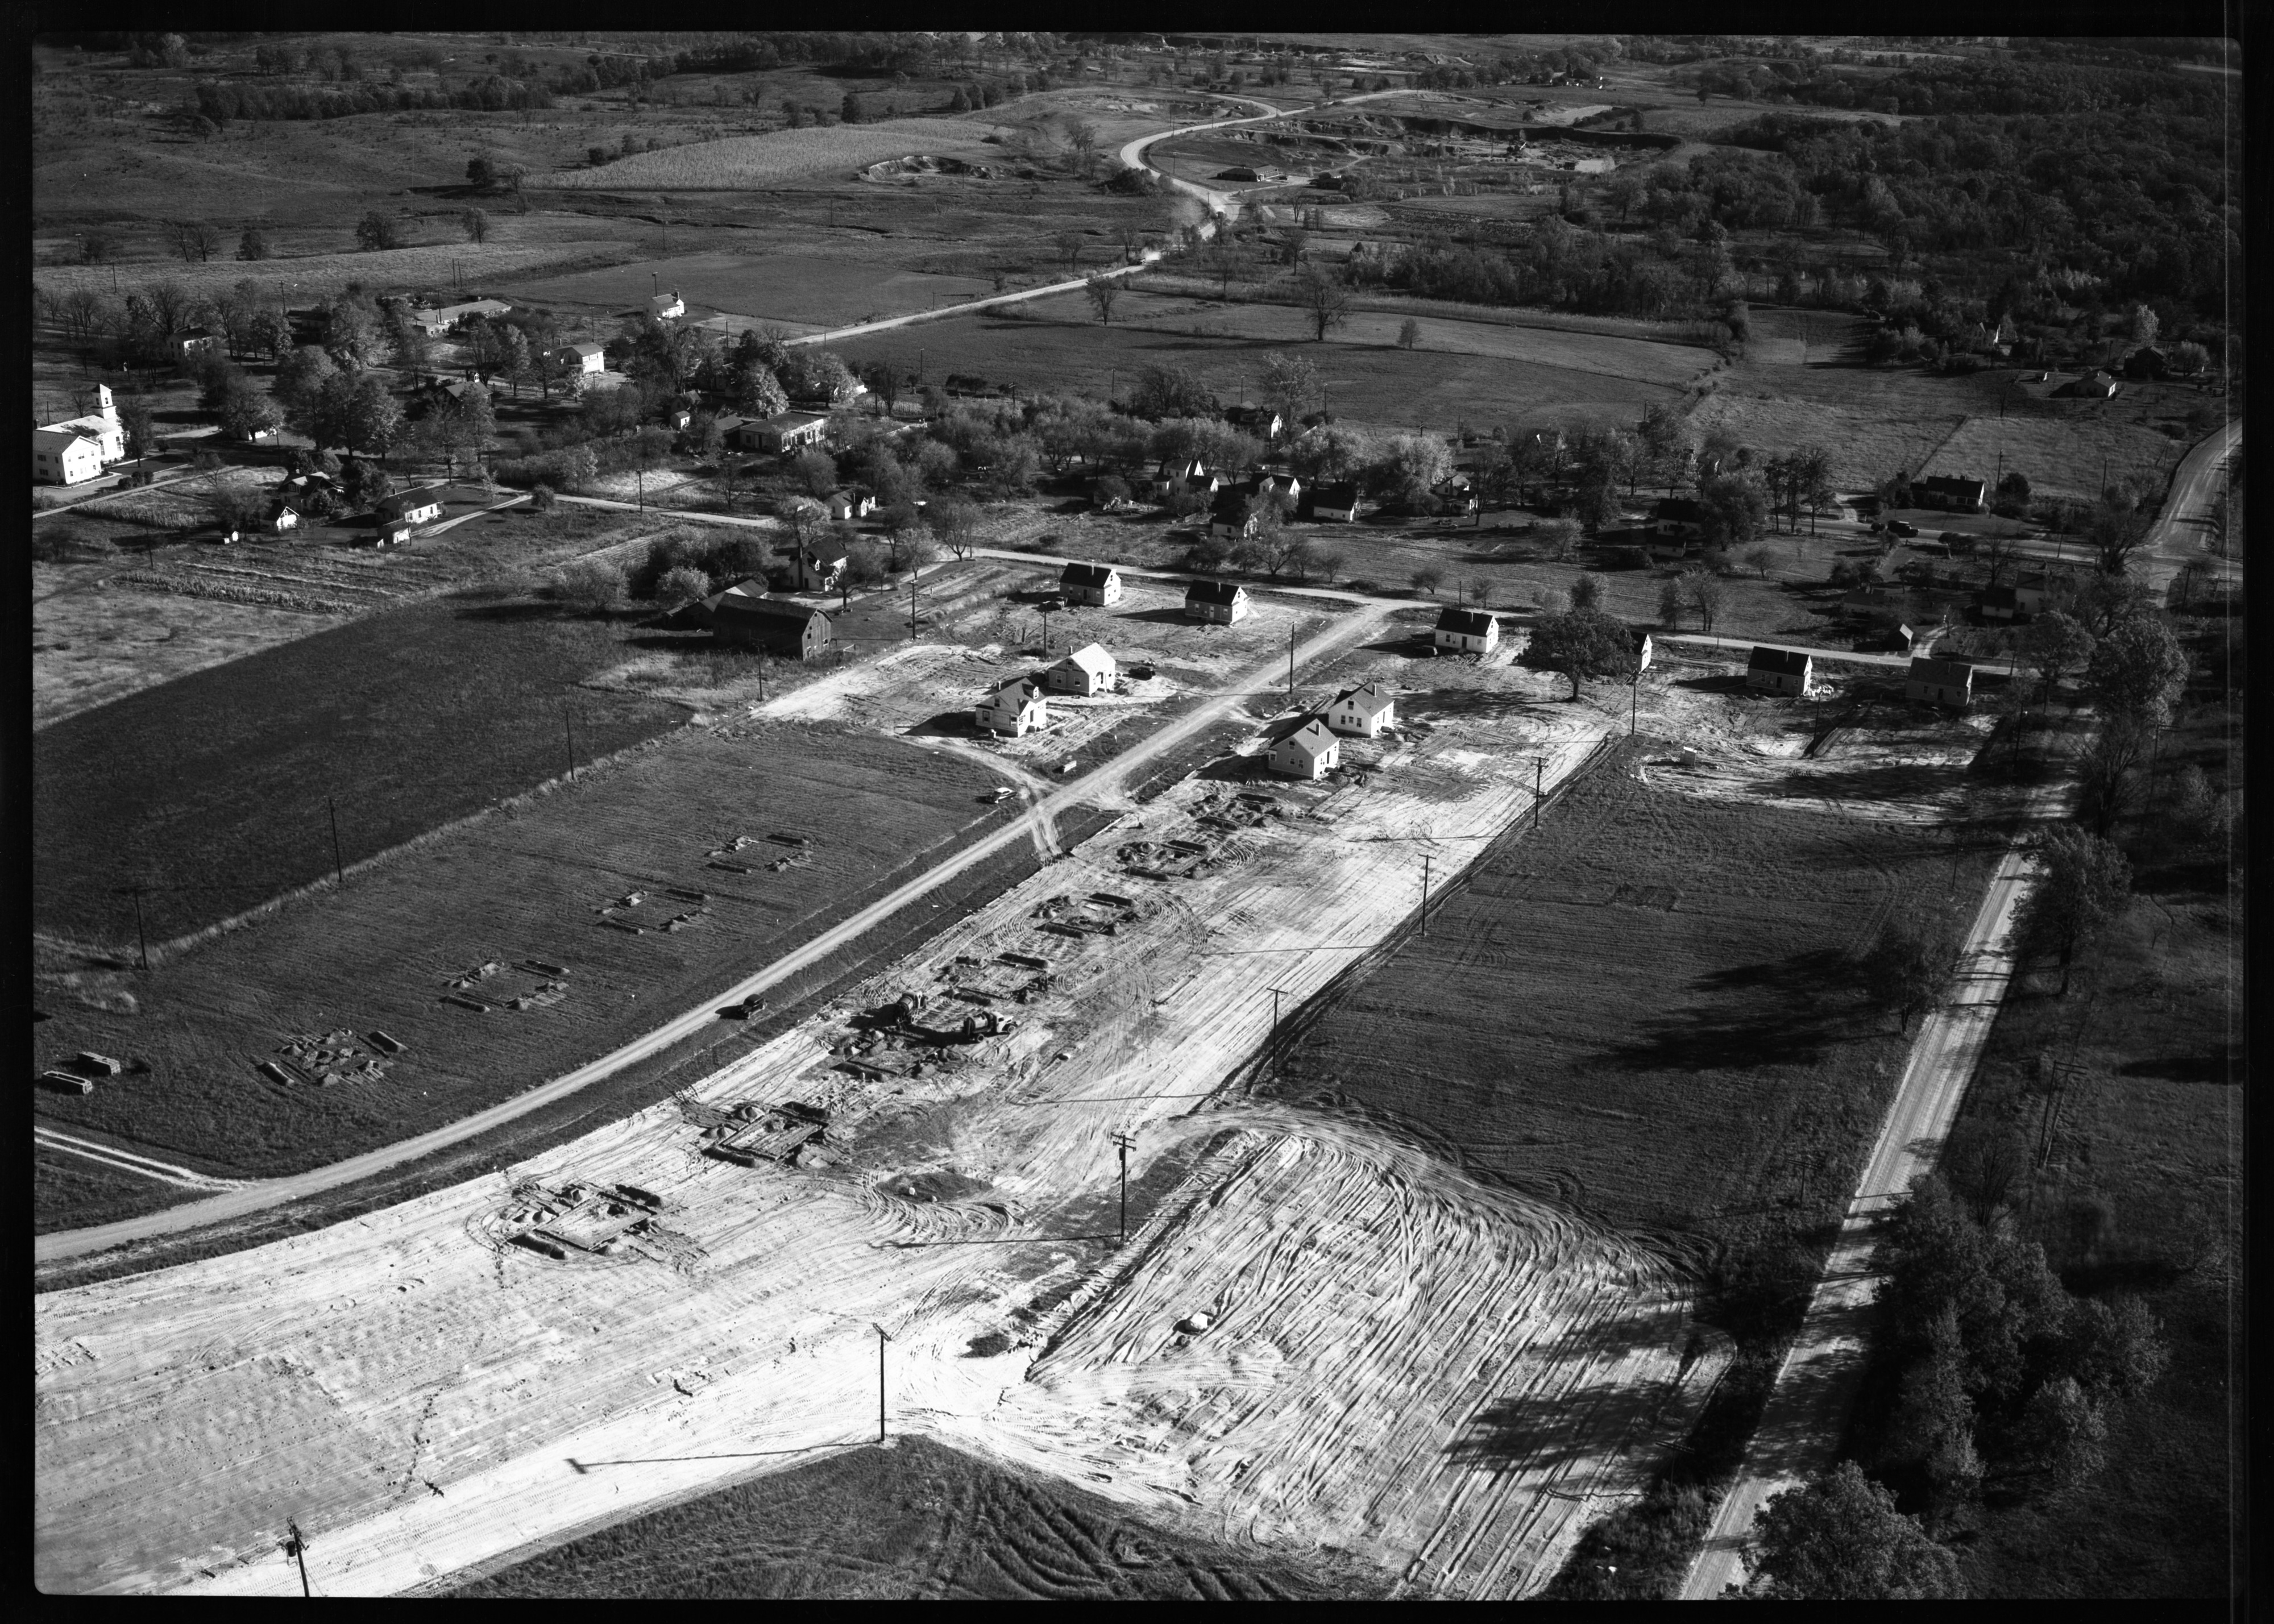 Aerial Photograph of Veteran's Housing Project in Dixboro, October 1951 image